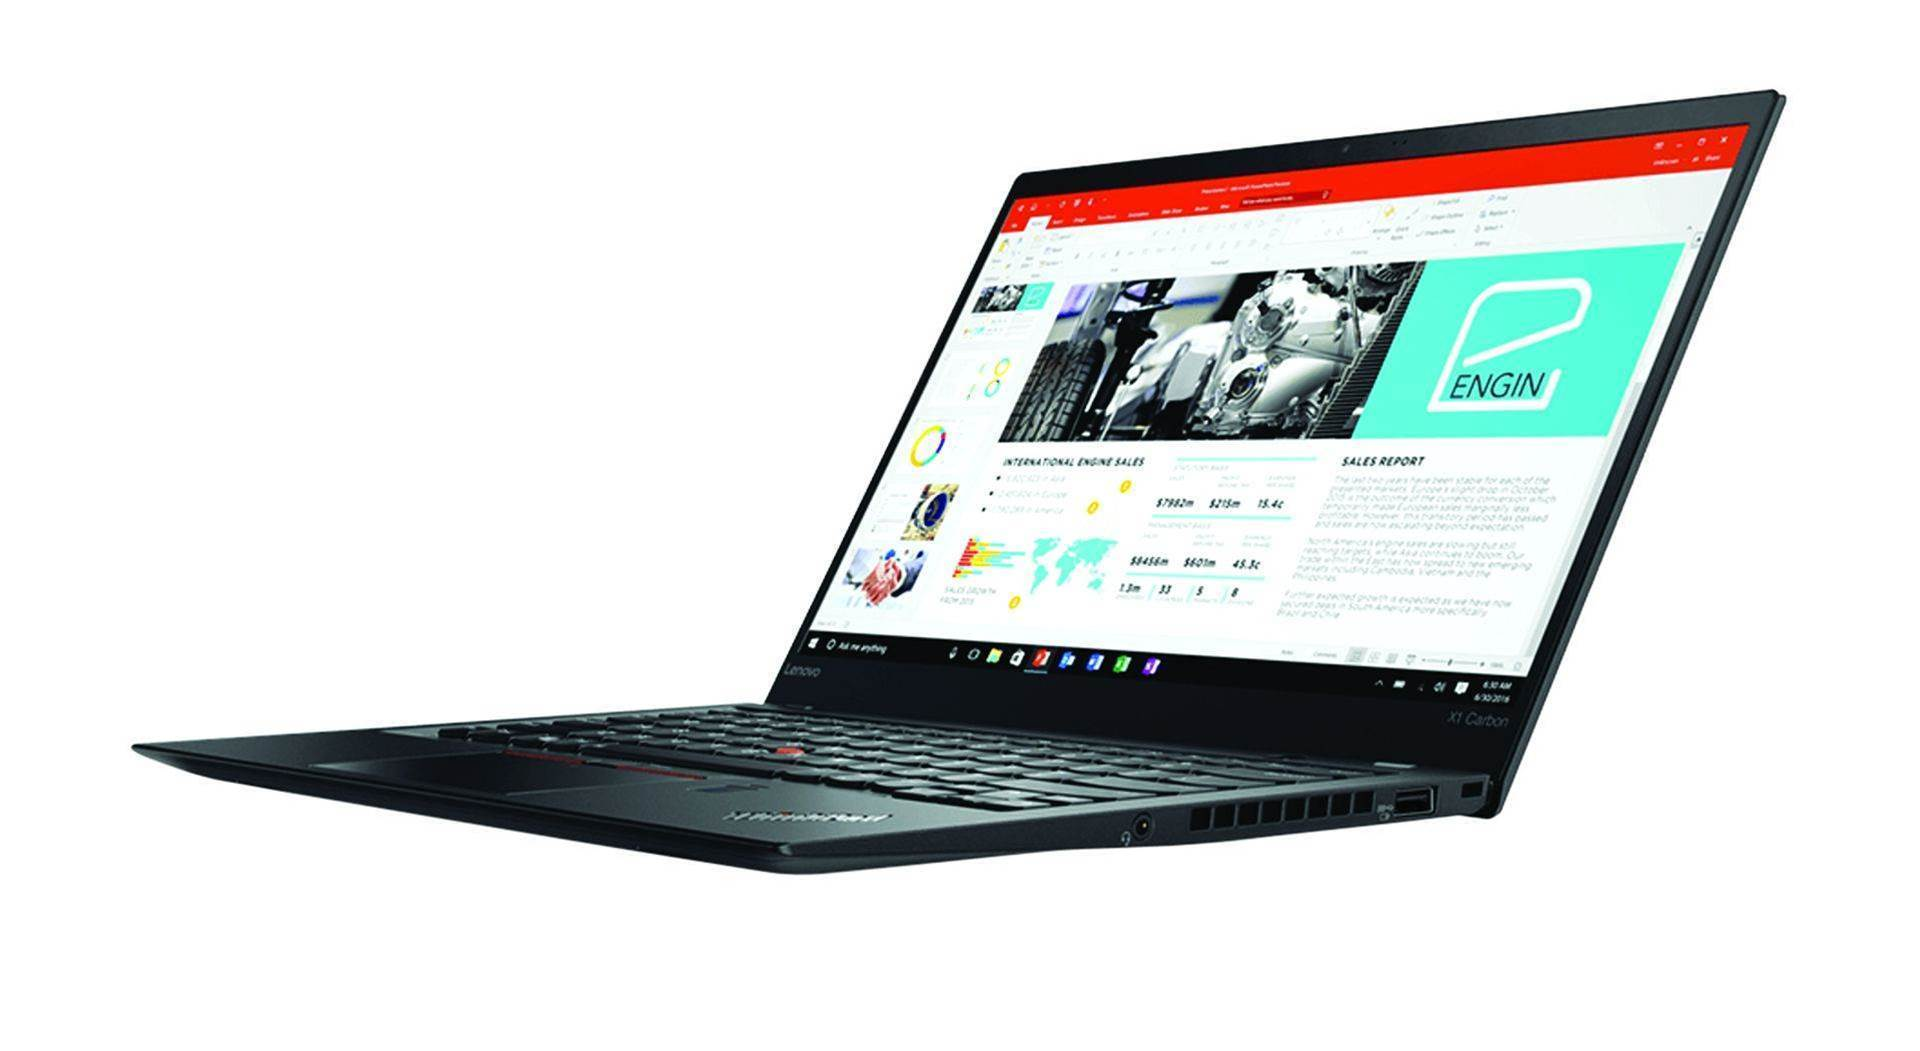 Review: Lenovo ThinkPad X1 Carbon (5th gen)